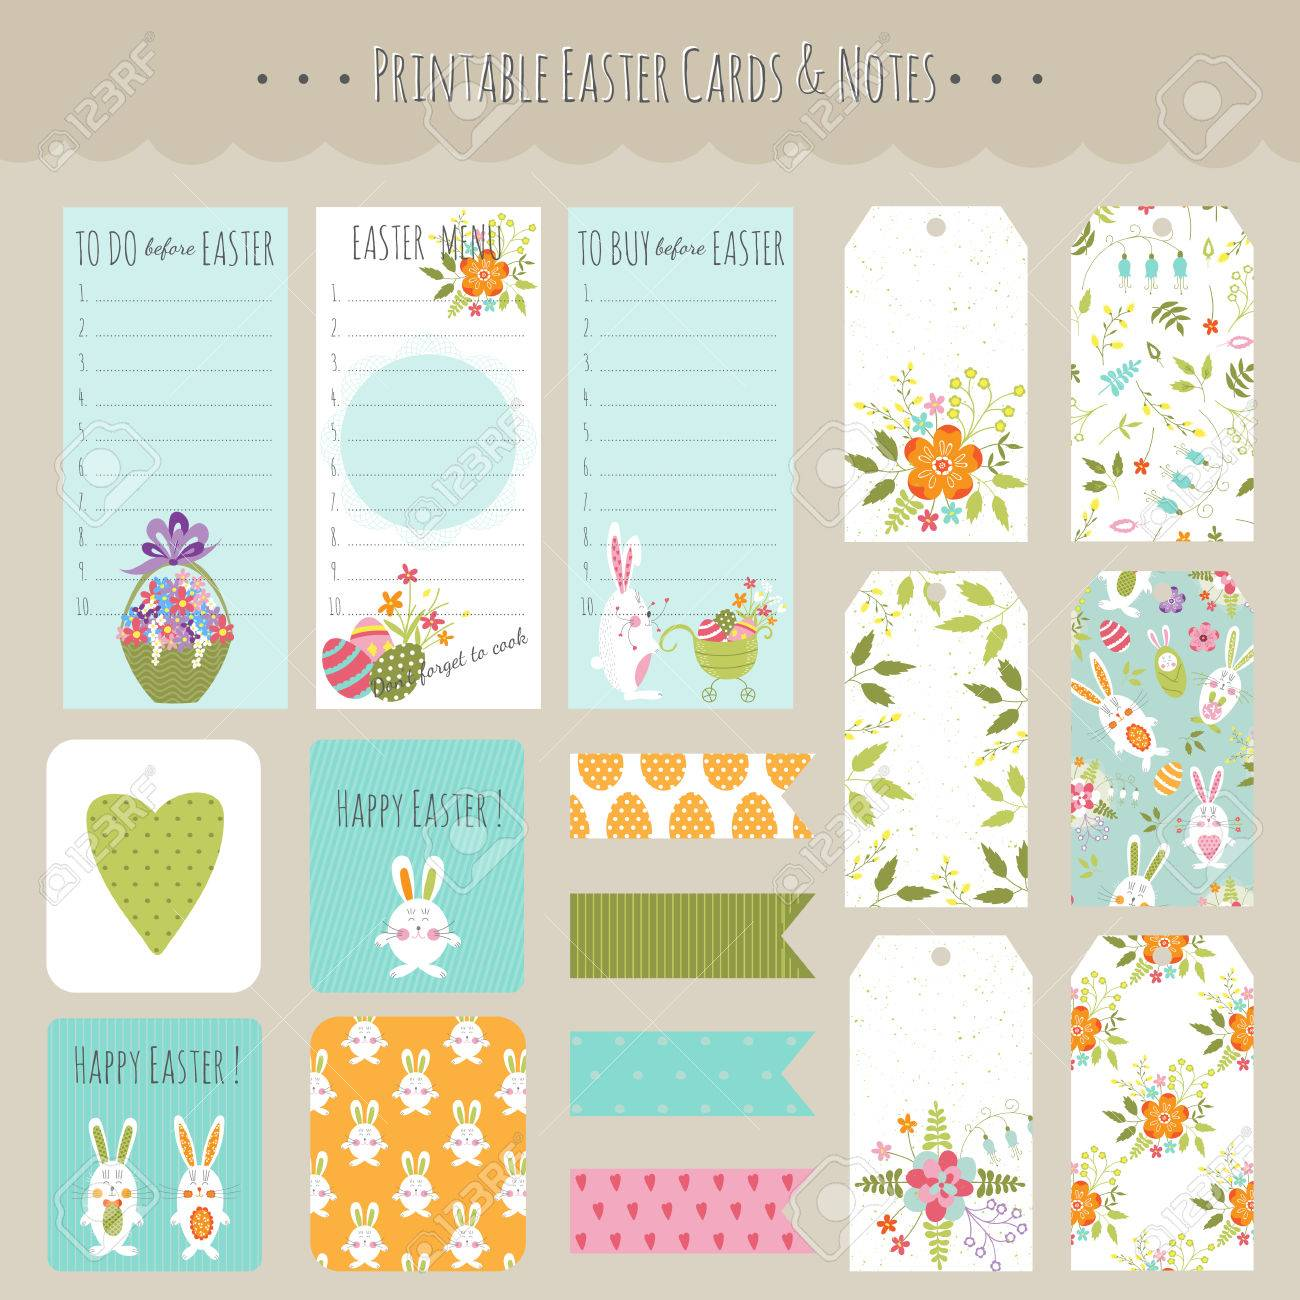 photo regarding Easter Stationery Printable named Vector huge fixed of Easter playing cards, tags, notes and stickers with..